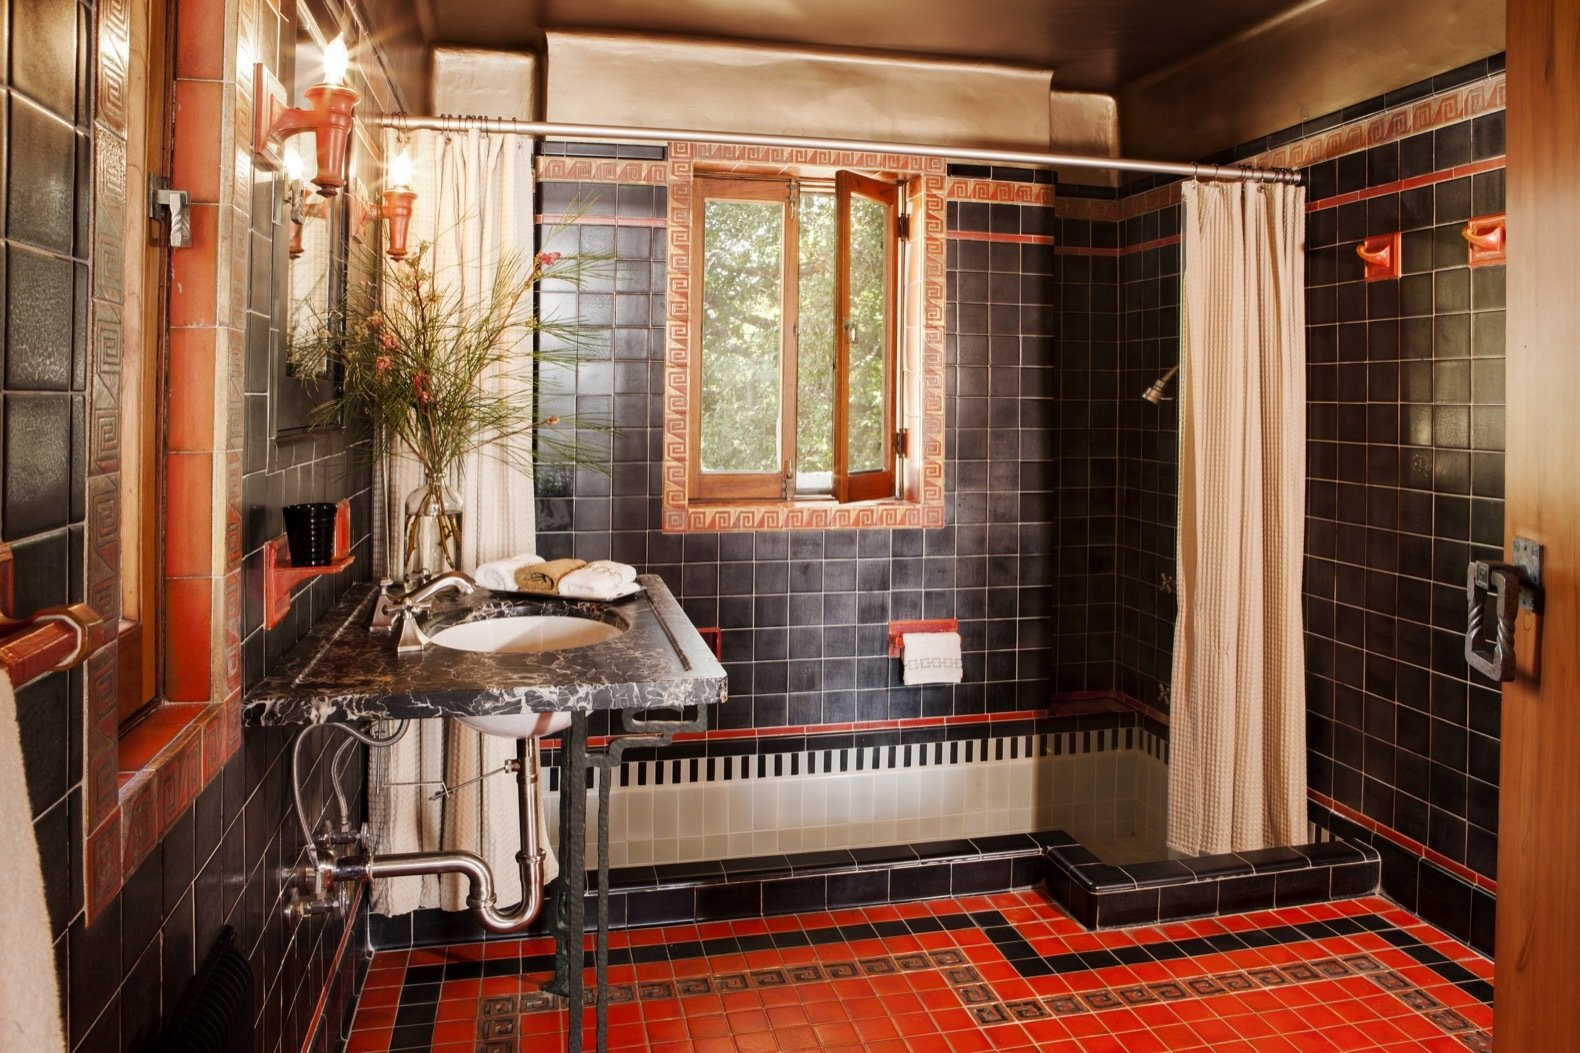 Bath Room, Ceramic Tile Wall, Undermount Sink, Soaking Tub, Wall Lighting, Stone Counter, Ceramic Tile Floor, Full Shower, and Wall Mount Sink Each of the bathrooms features a soaking tub and different patterned tile.  Photo 19 of 23 in Frank Lloyd Wright's Iconic Ennis House Is Listed For $23M